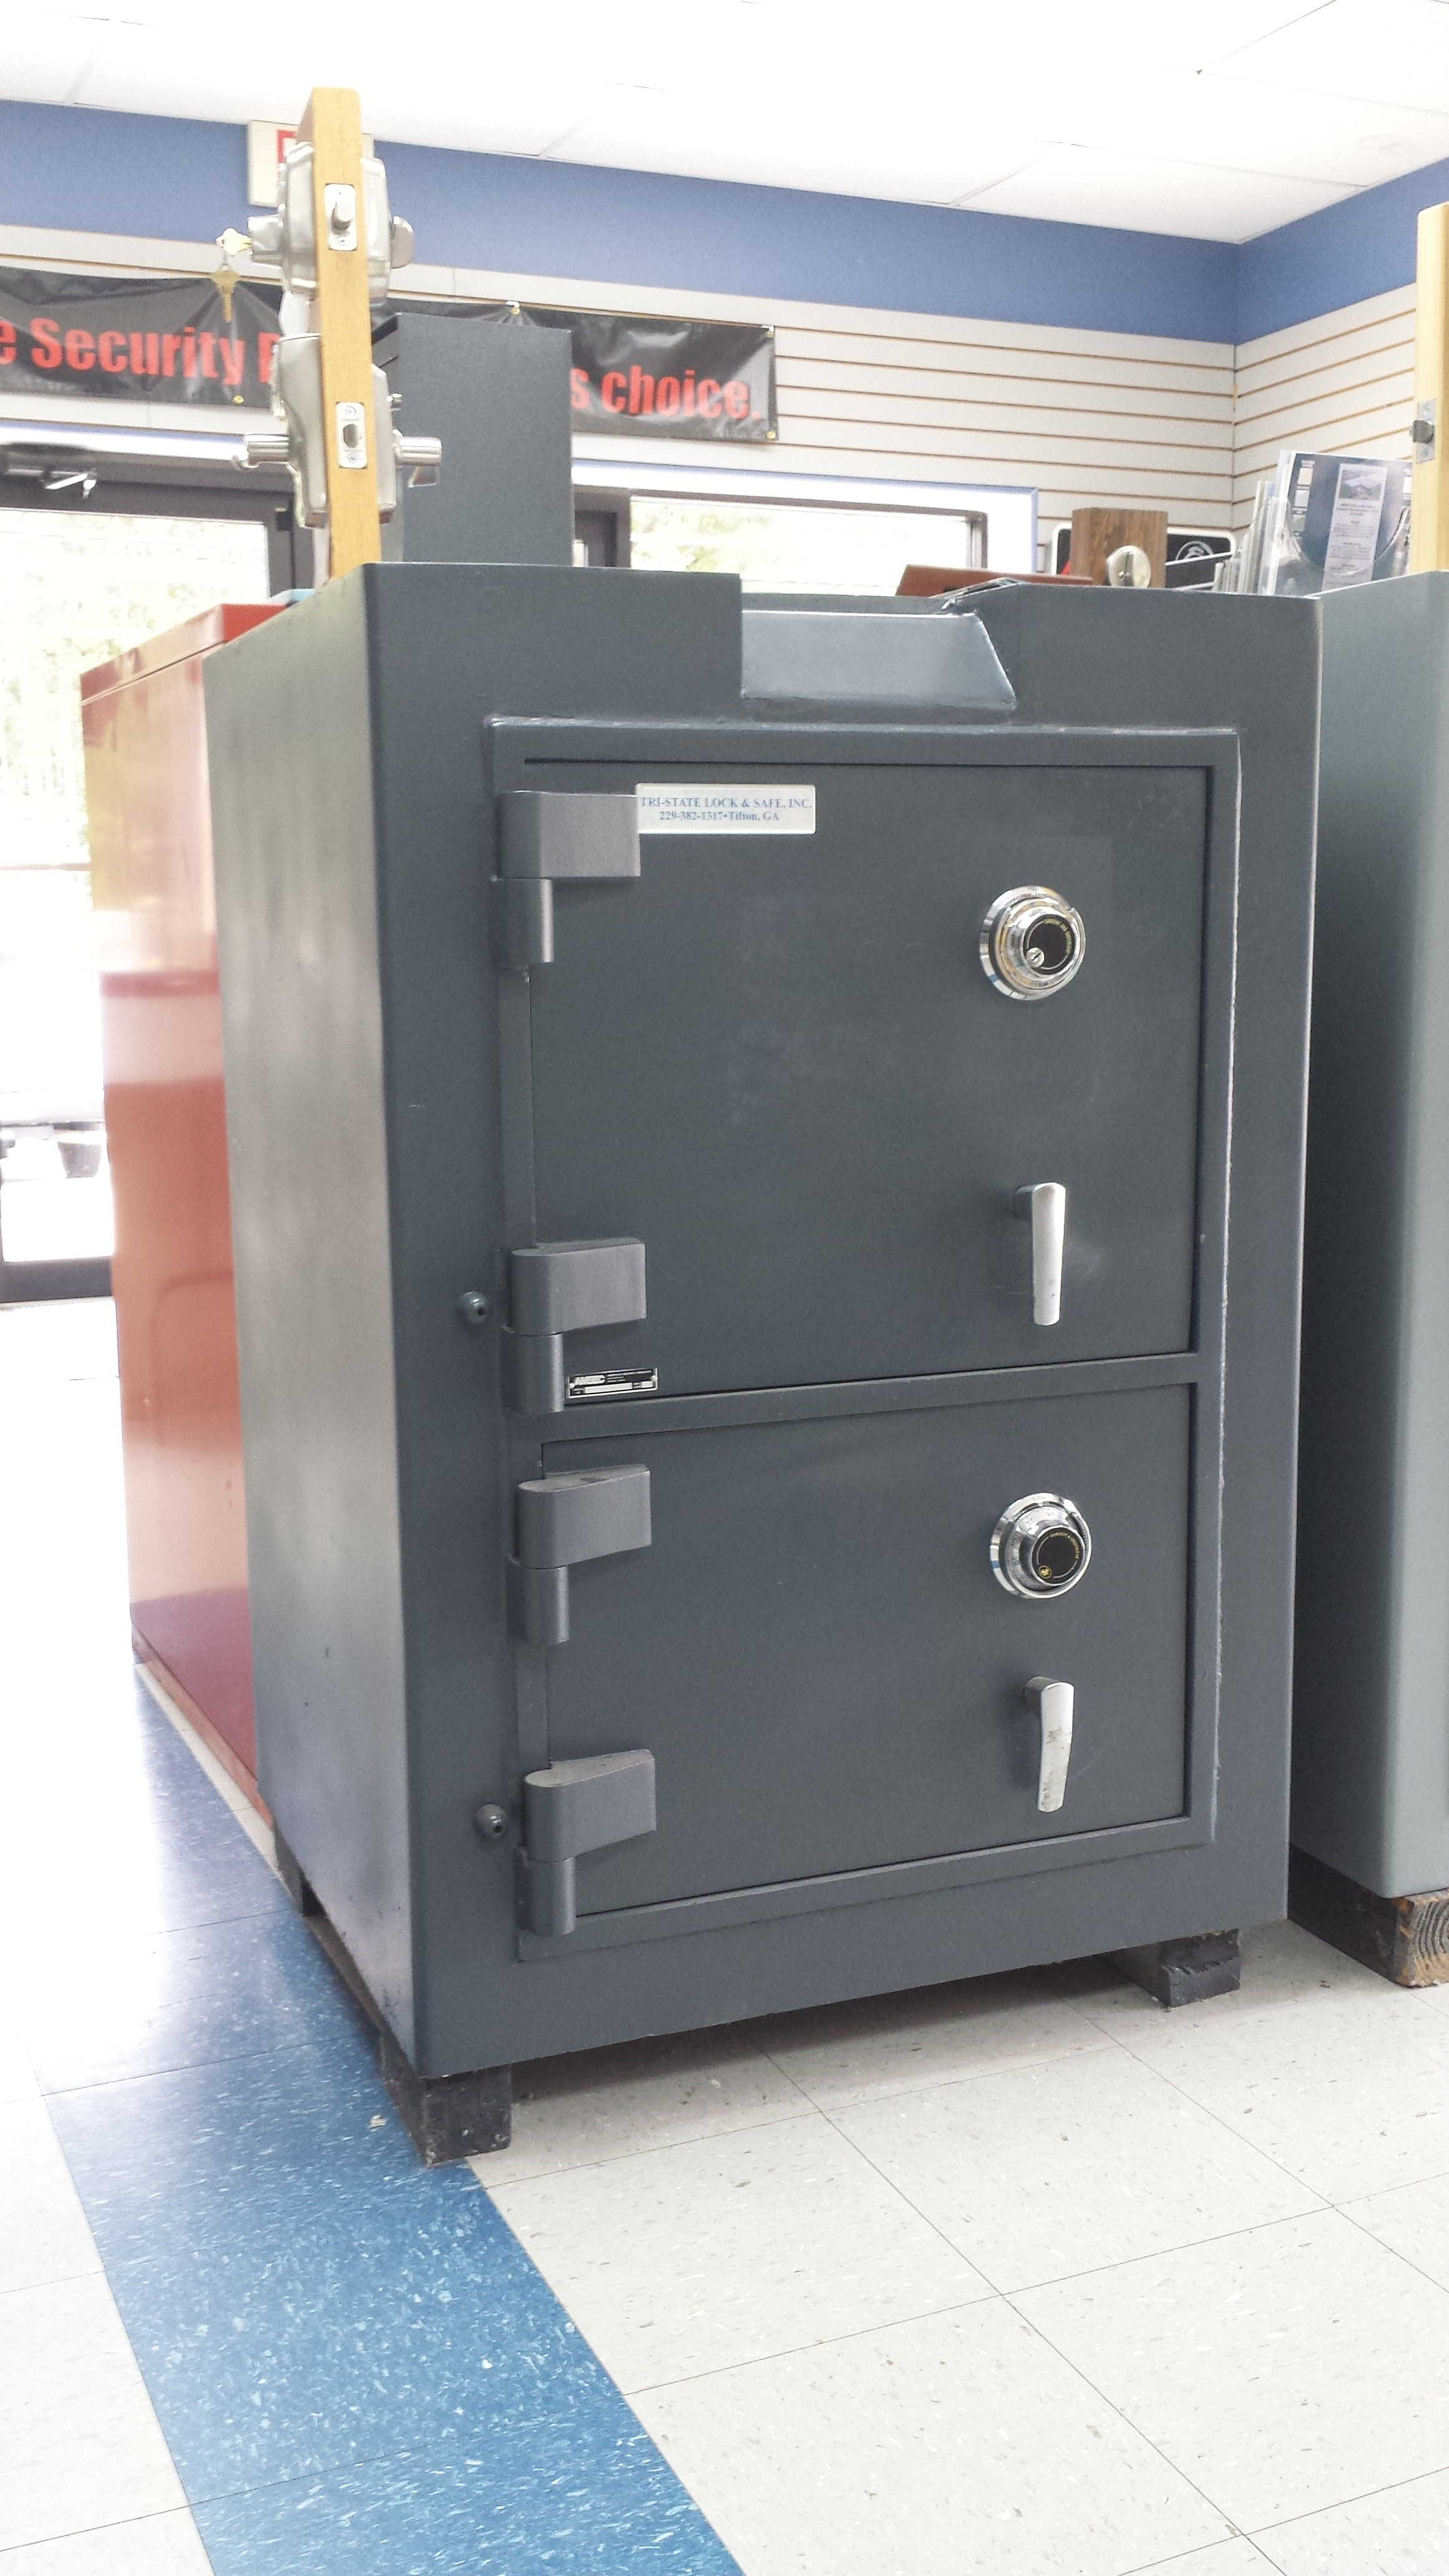 listed ul jun money depository door products lock photo double am drop southeastern digital with safe